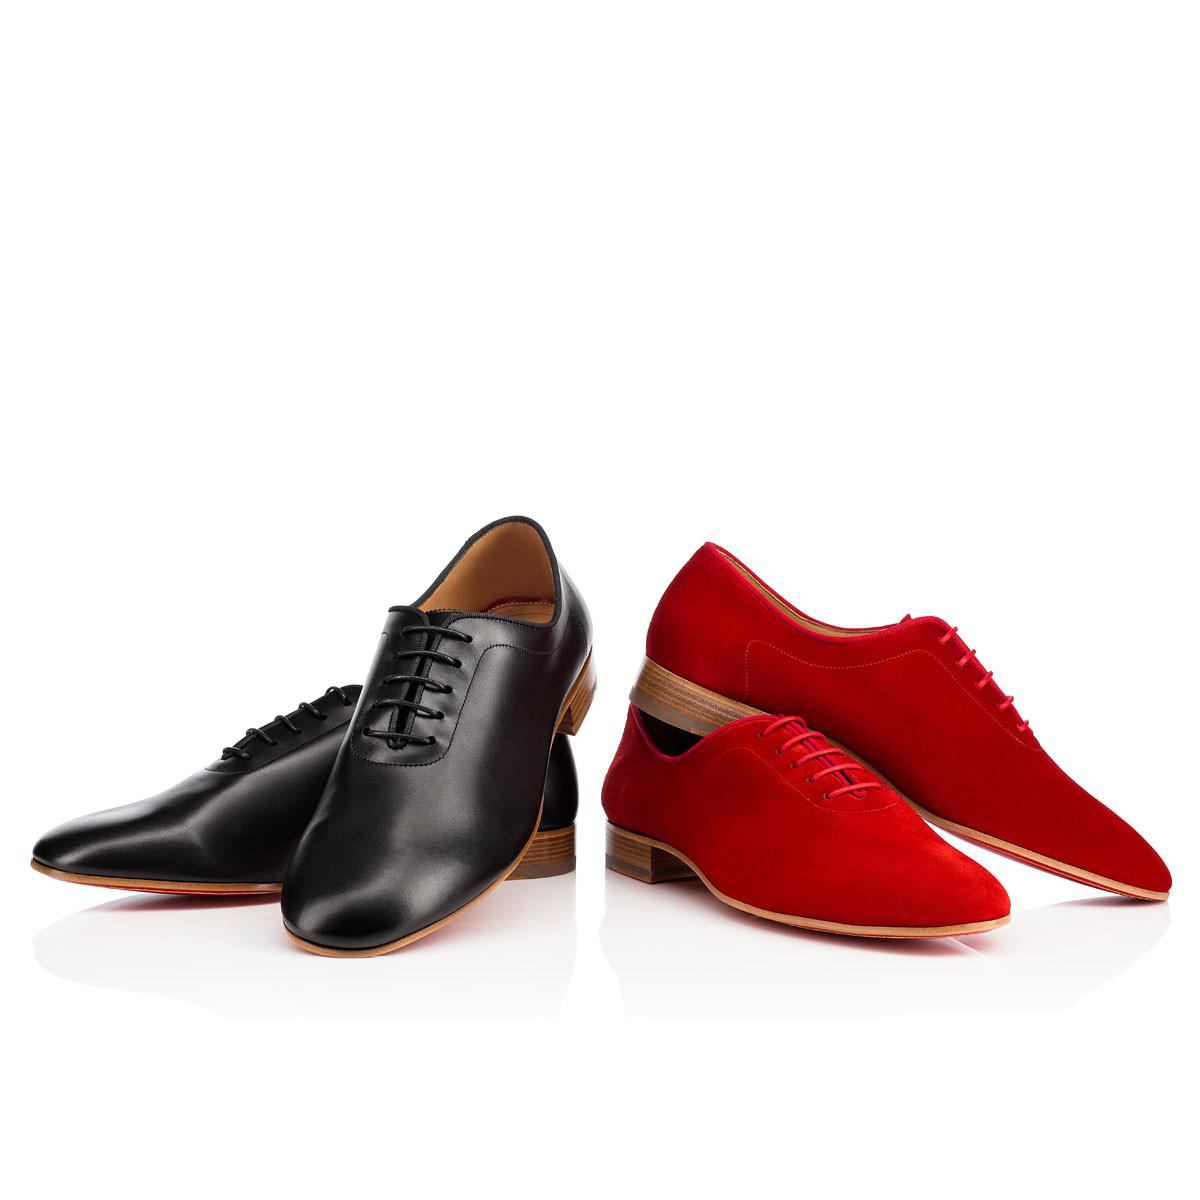 bdce791c9e08e Lyst - Christian Louboutin Ac Alfred Flat in Red for Men